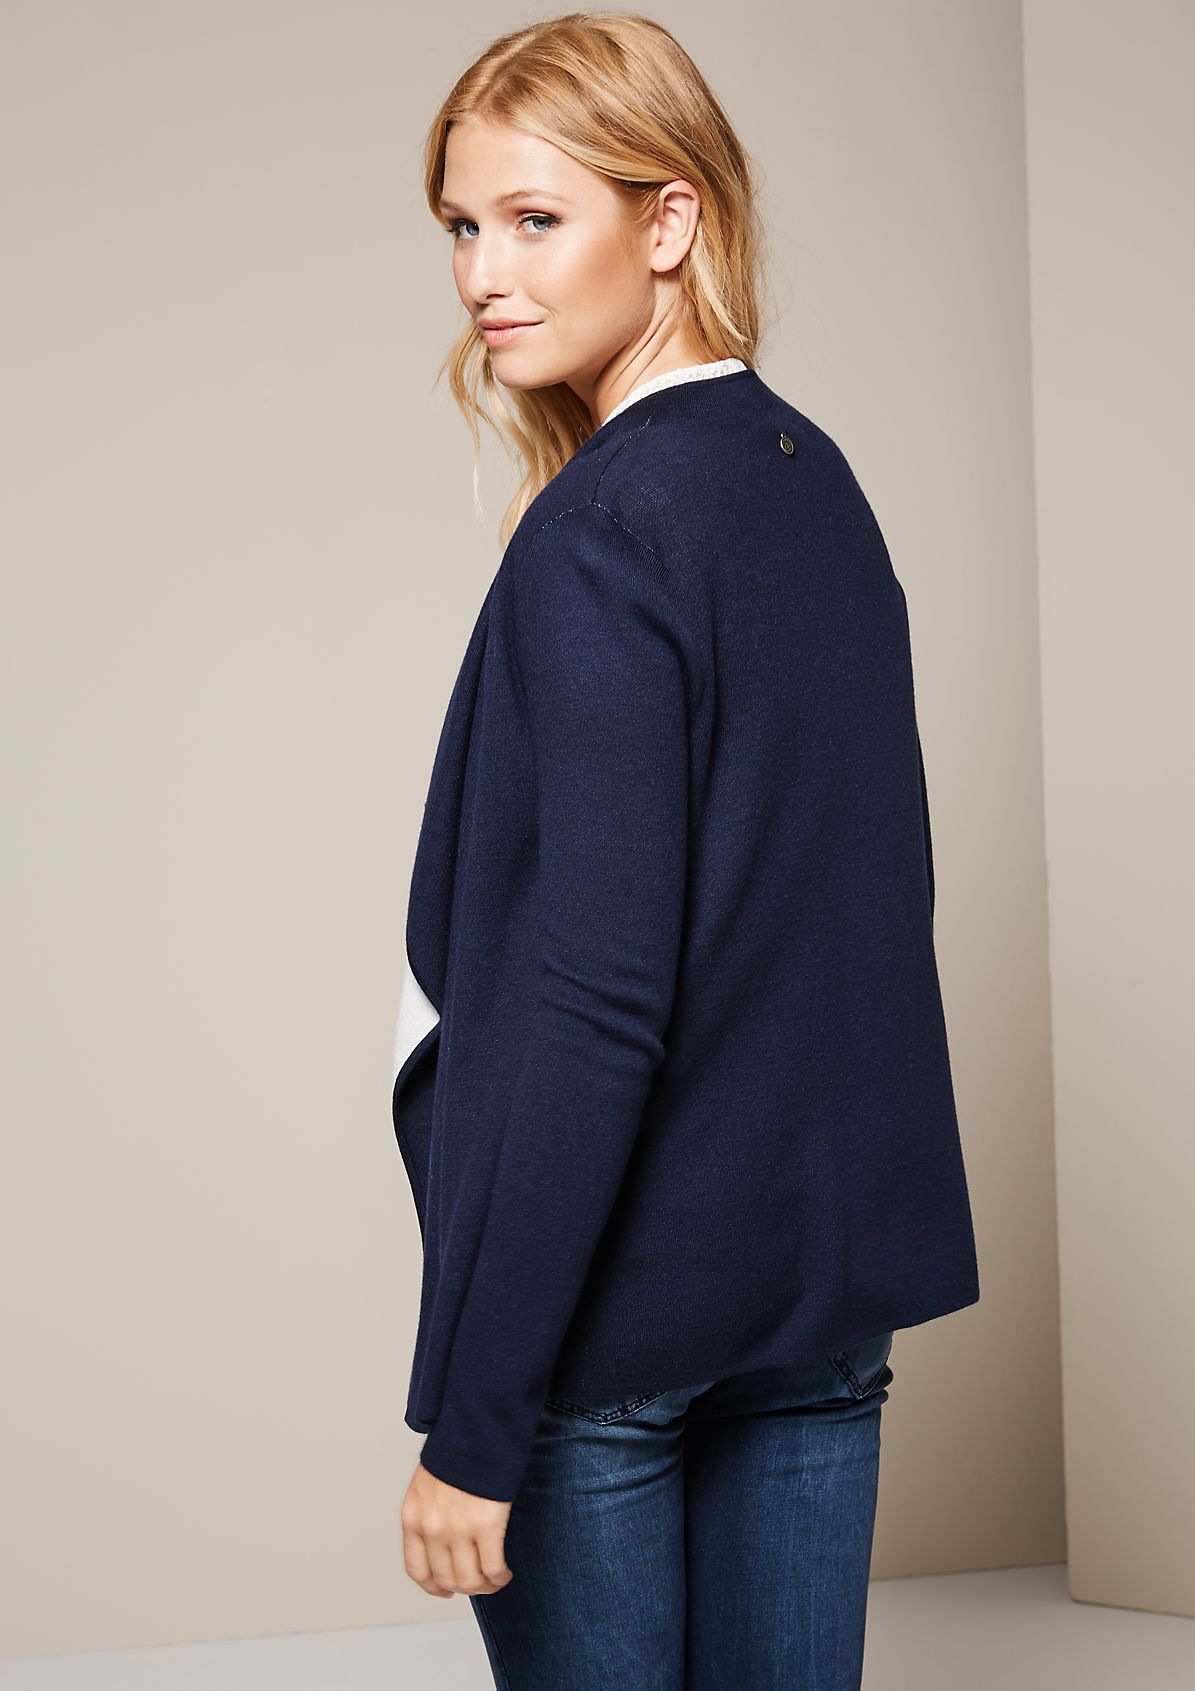 Soft cardigan with beautiful details from s.Oliver